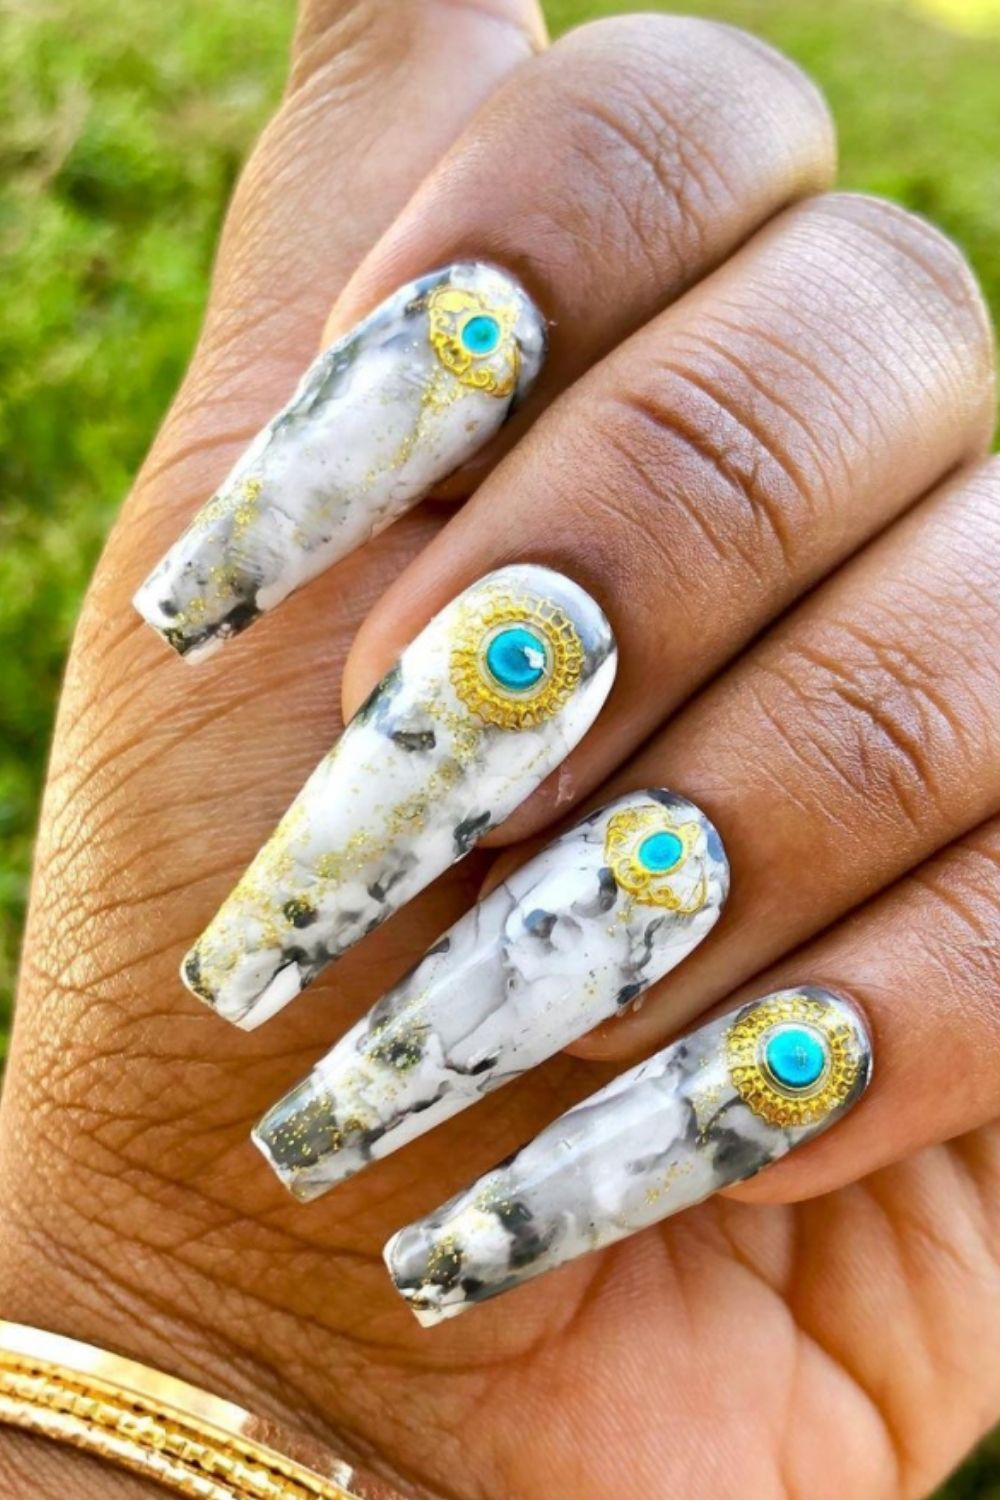 Marble coffin nail